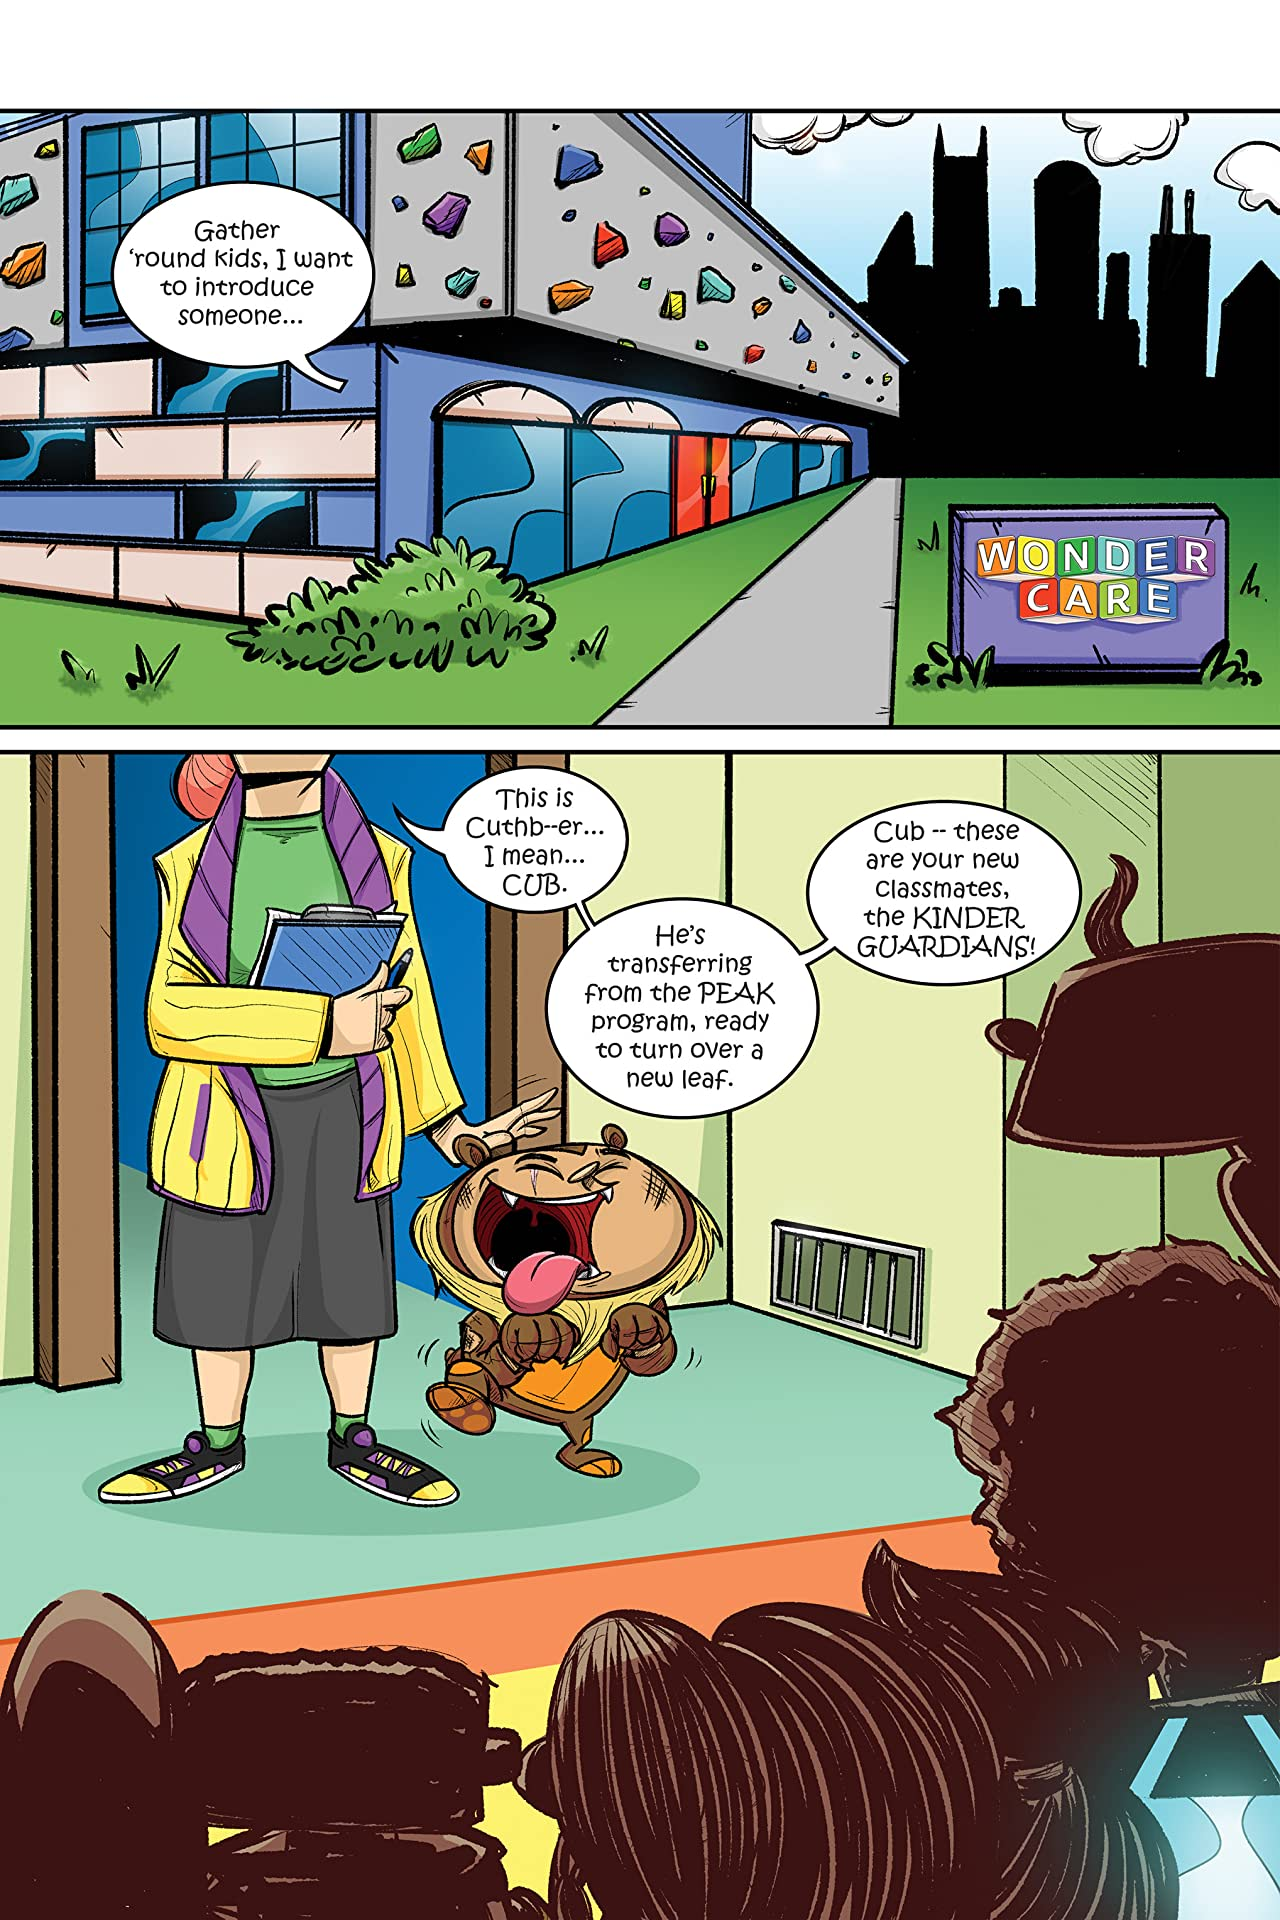 Wonder Care Presents: The Kinder Guardians #4